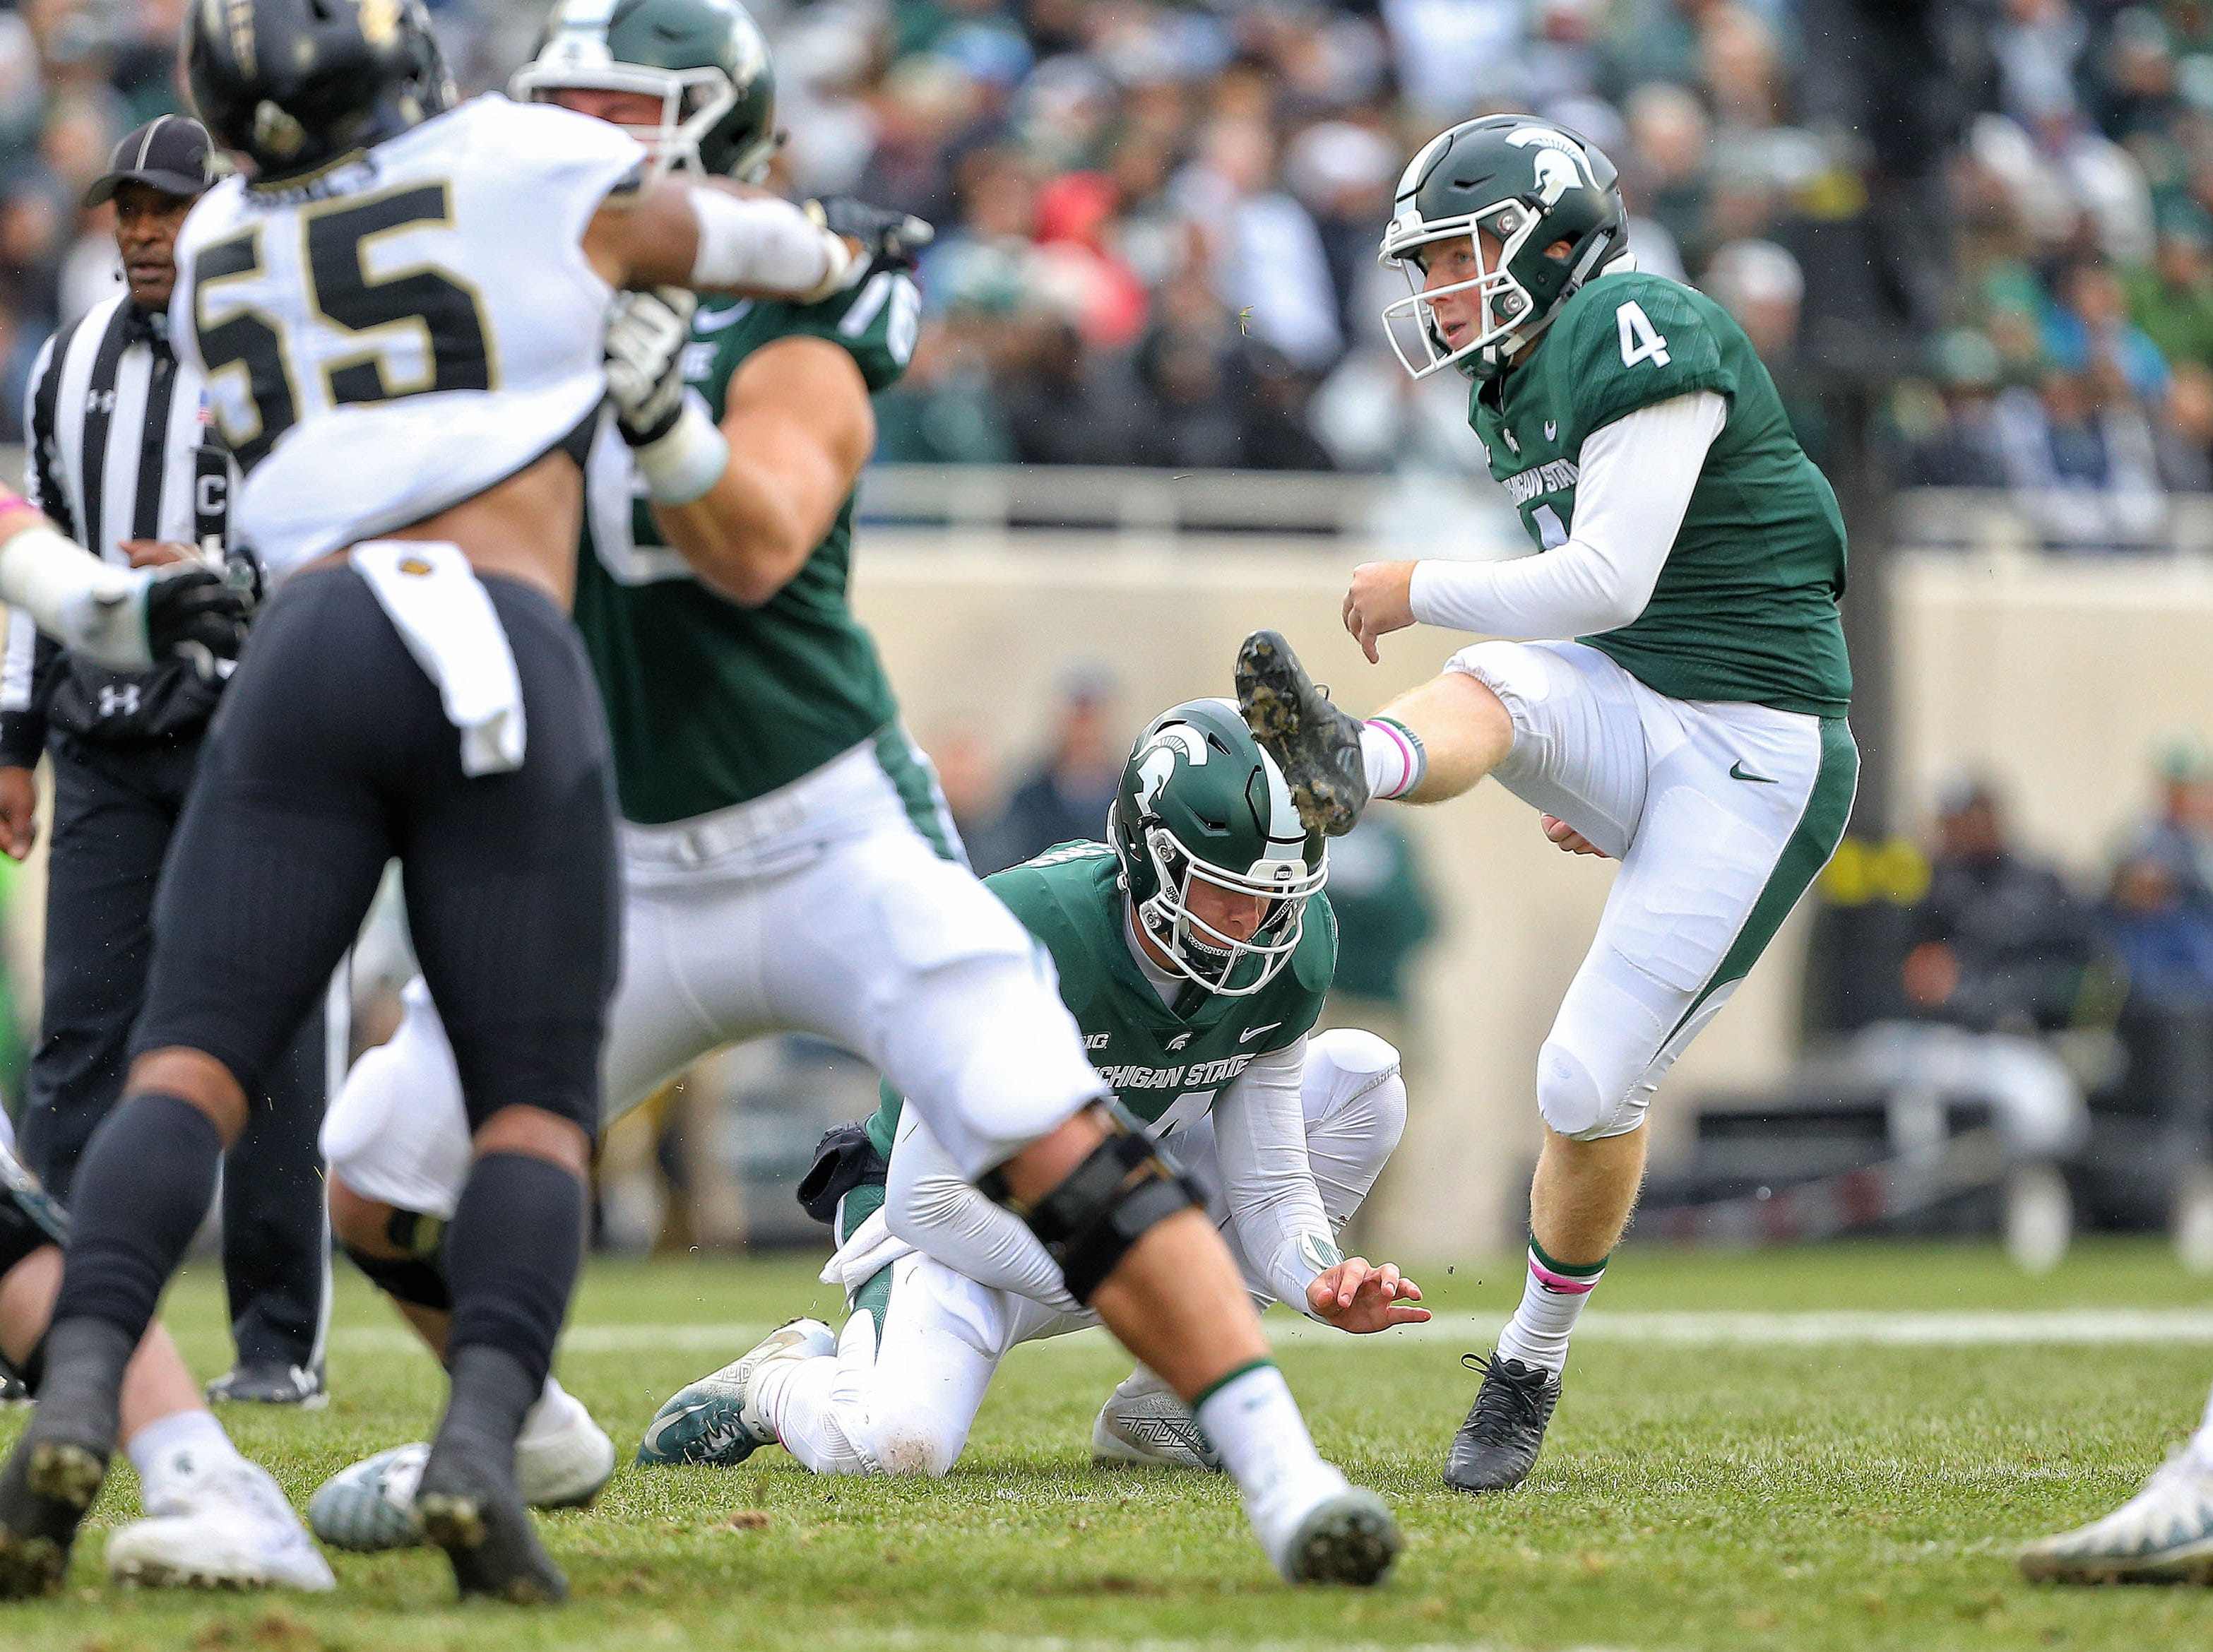 Oct 27, 2018; East Lansing, MI, USA; Michigan State Spartans place kicker Matt Coghlin (4) kicks a field goal out of the hold of Michigan State Spartans quarterback Brian Lewerke (14) during the first quarter of a game at Spartan Stadium. Mandatory Credit: Mike Carter-USA TODAY Sports